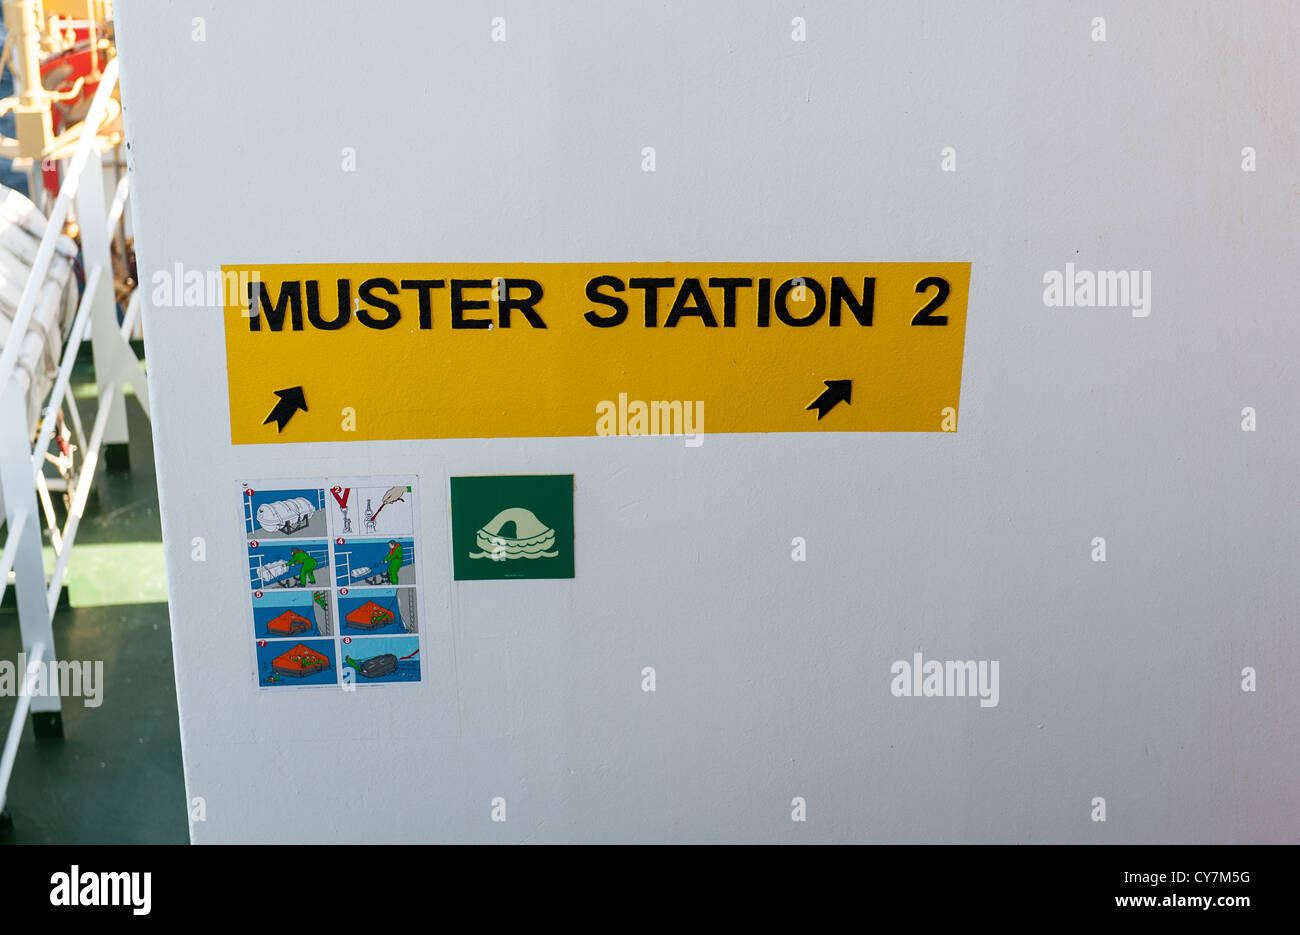 Muster station signs on a vessel - Stock Image